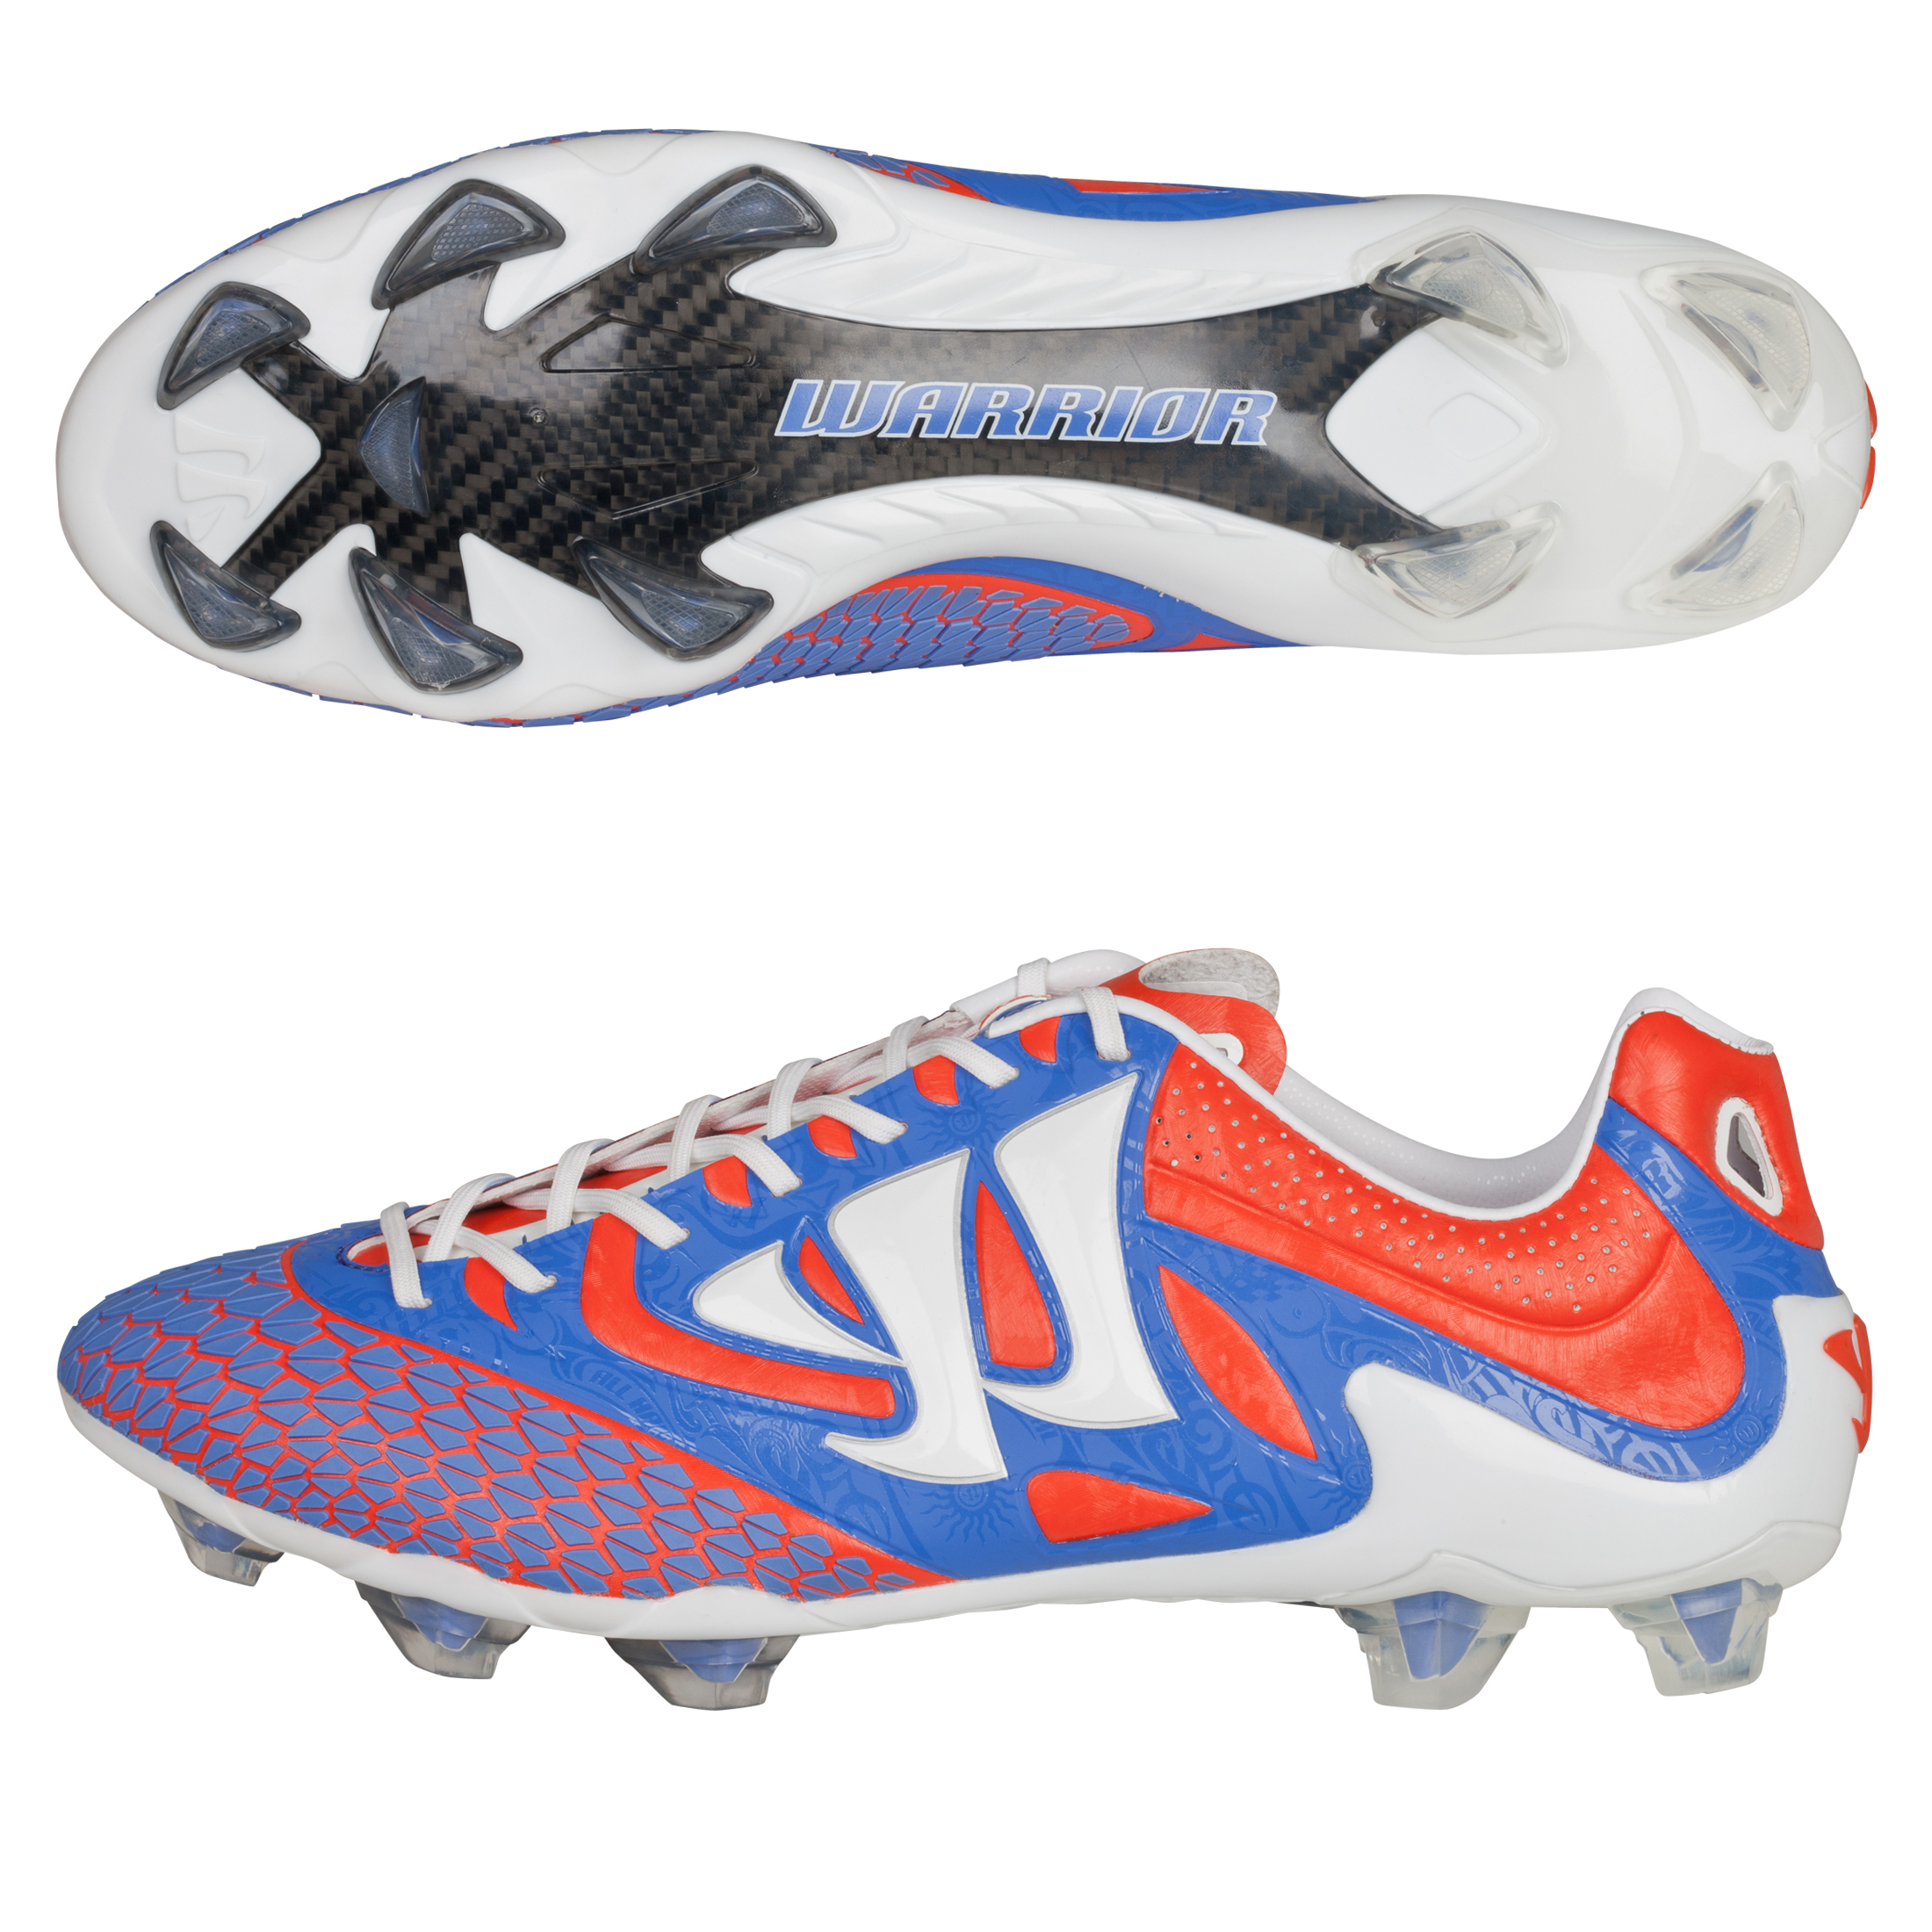 Warrior Sports Skreamer S-Lite Firm Ground Football Boots - Spicy Orange/Baja Blue/White